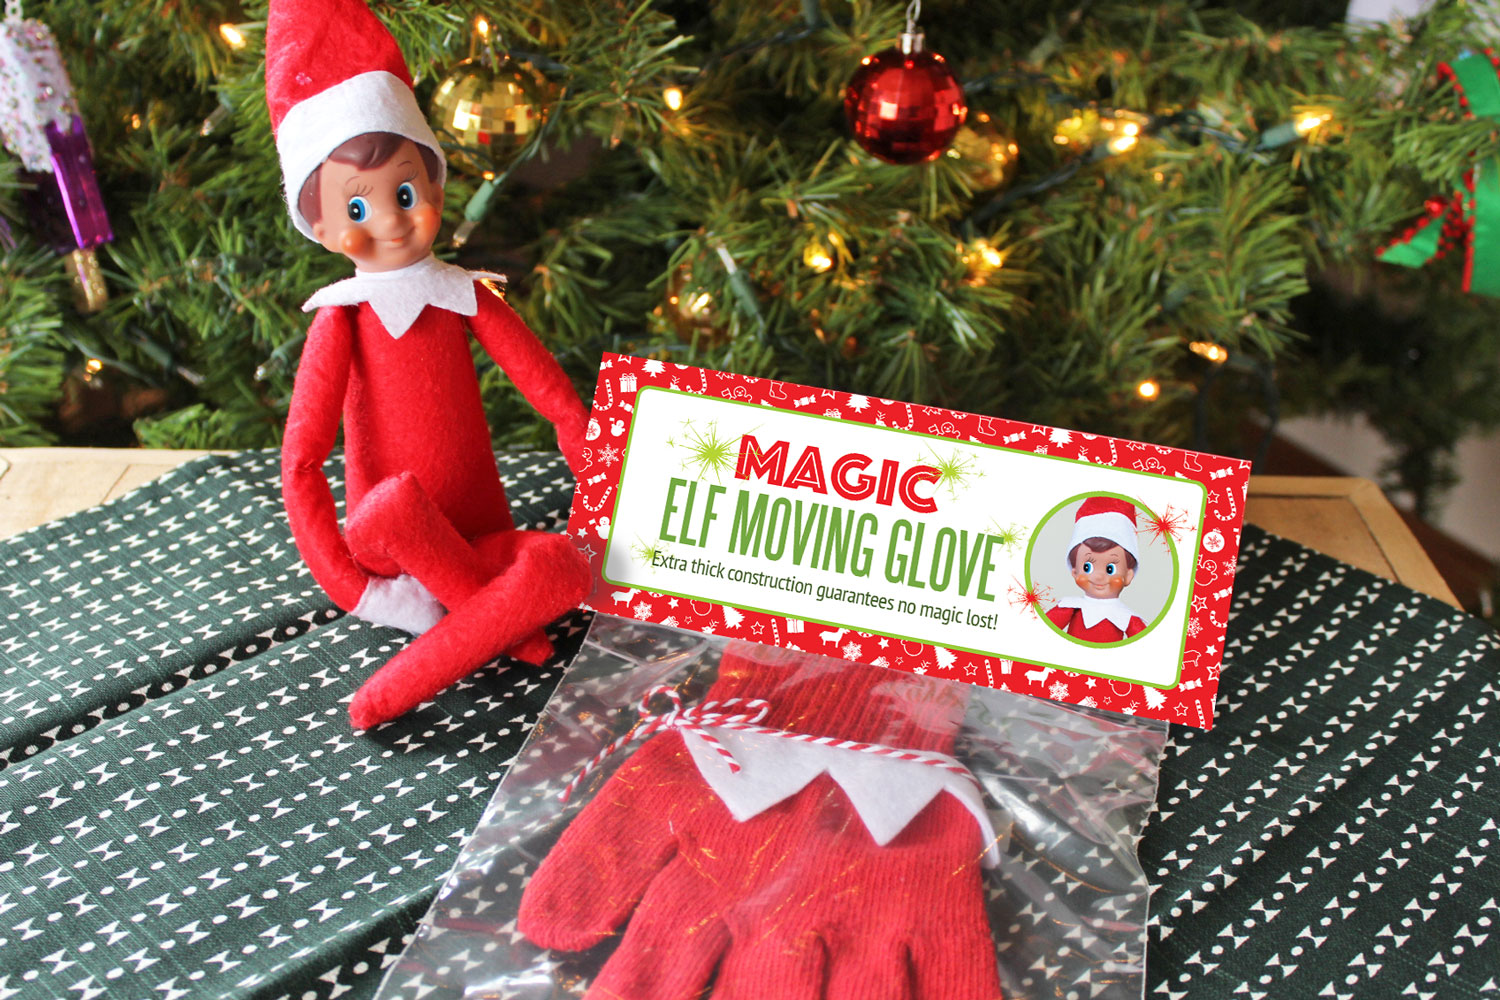 image regarding Elf on the Shelf Printable called Do it yourself Magic Elf upon the Shelf Shifting Glove with Totally free Printable